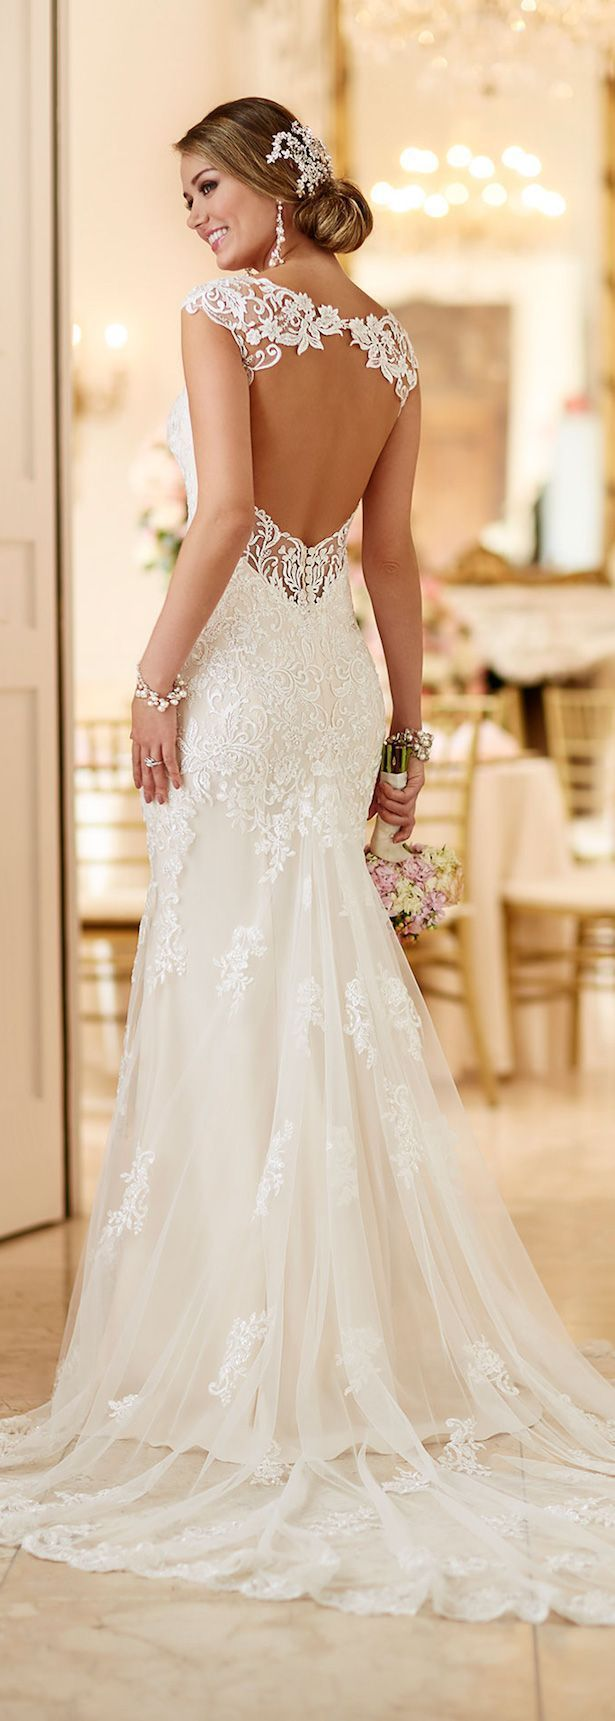 Floaty skirt with lace high neck fitted top wedding dress – Image by Lee Garland – The 2016 Promises Of Love Collection From Amanda Wyatt Image source wedding d